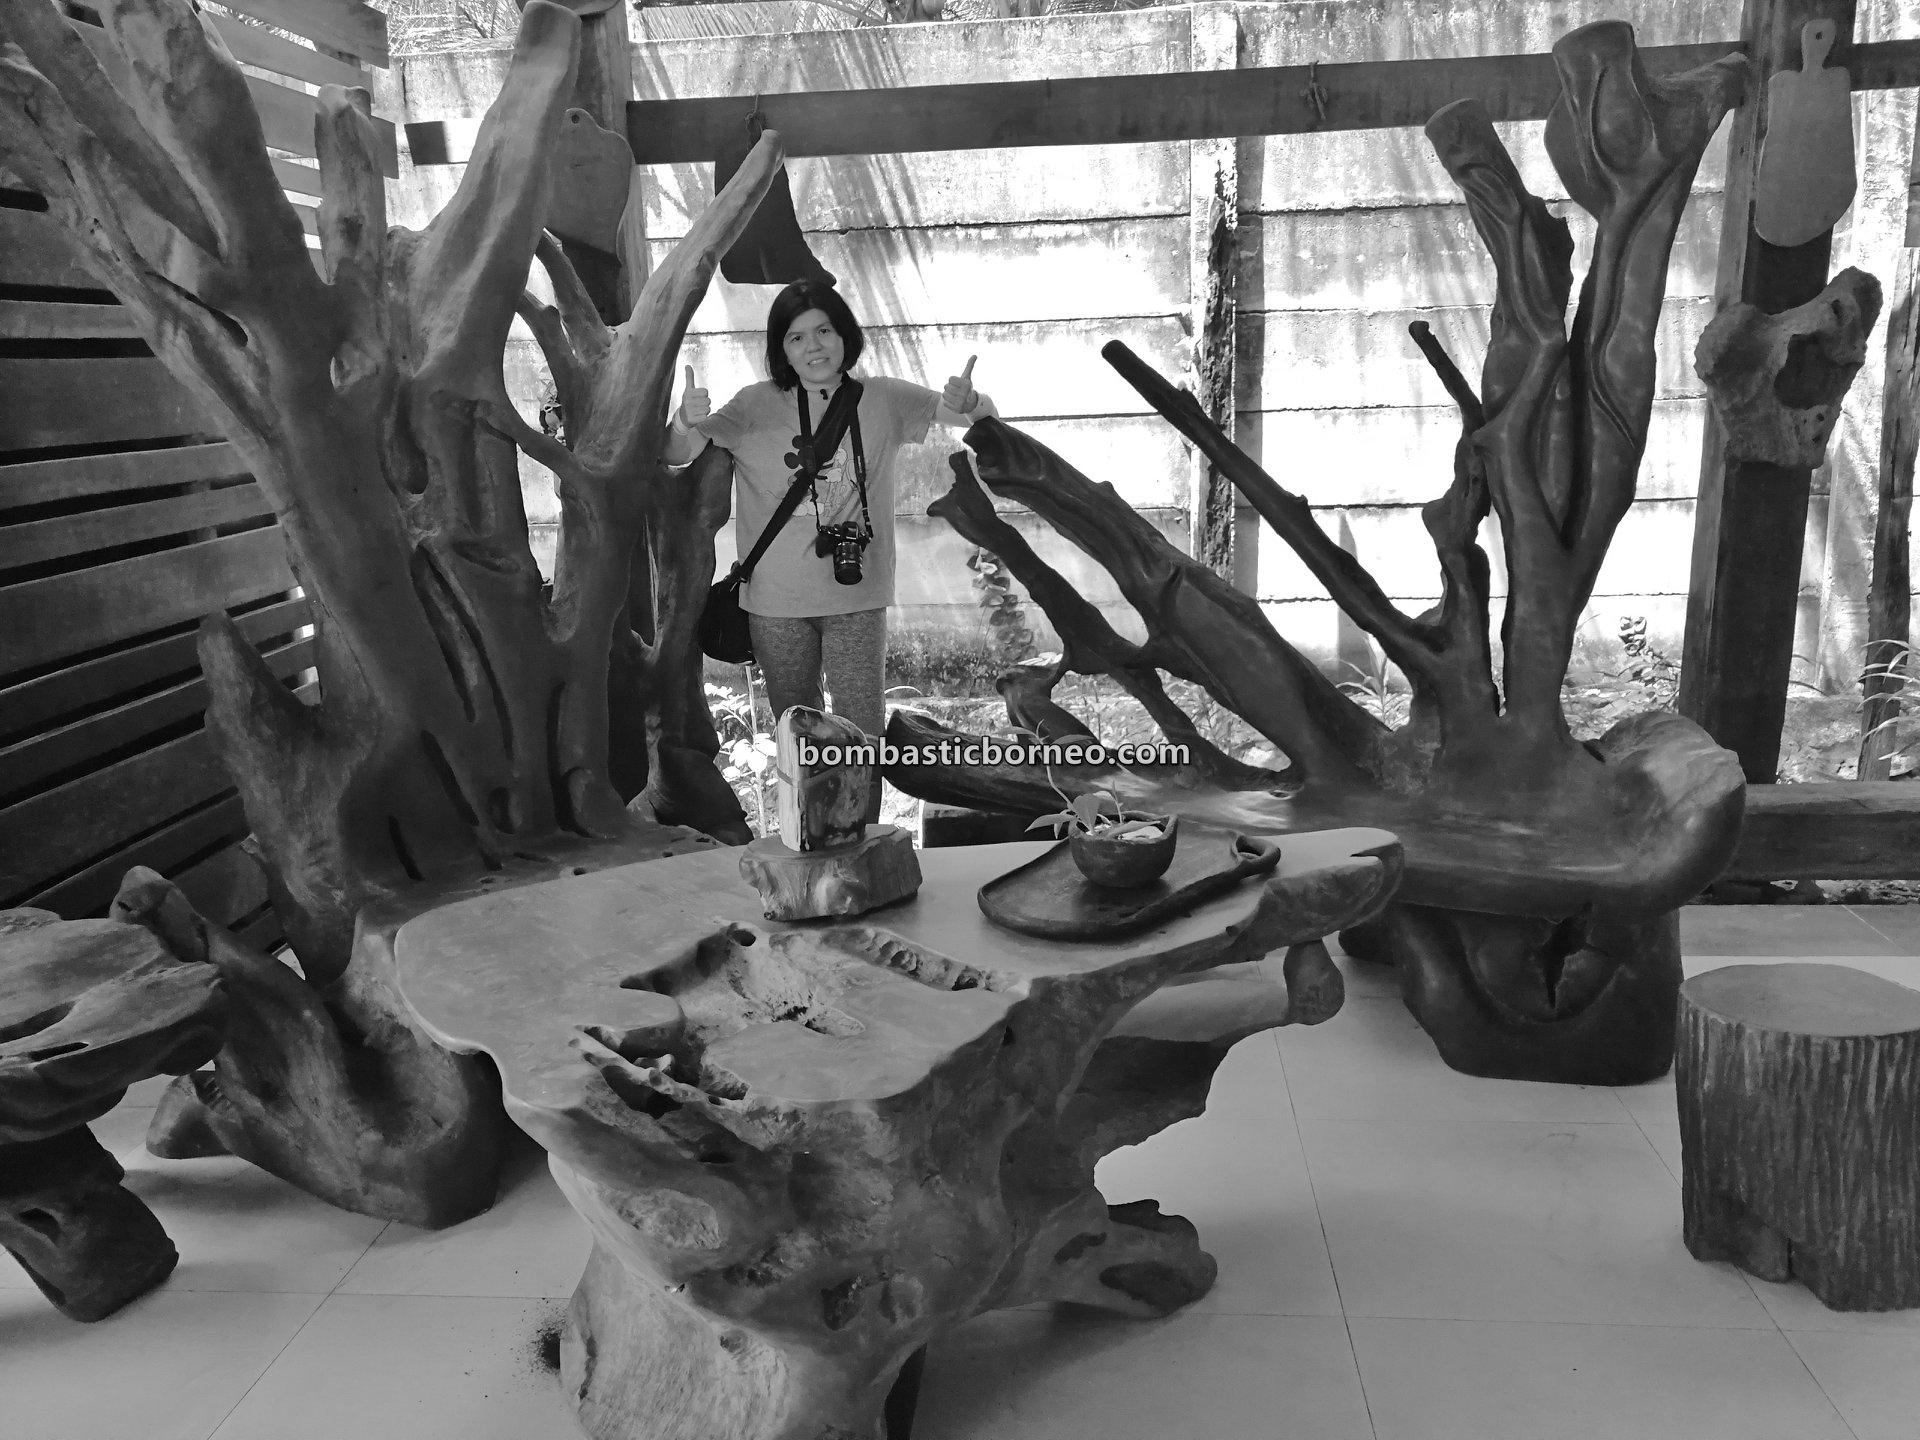 belian wood, kayu ulin, Furniture, collection, gallery, Singkawang, kerajinan kayu, nature, Tourism, tourist attraction, travel guide, wood sculptures, 探索婆罗洲木雕, 西加里曼丹山口洋, 南洋铁木展示中心